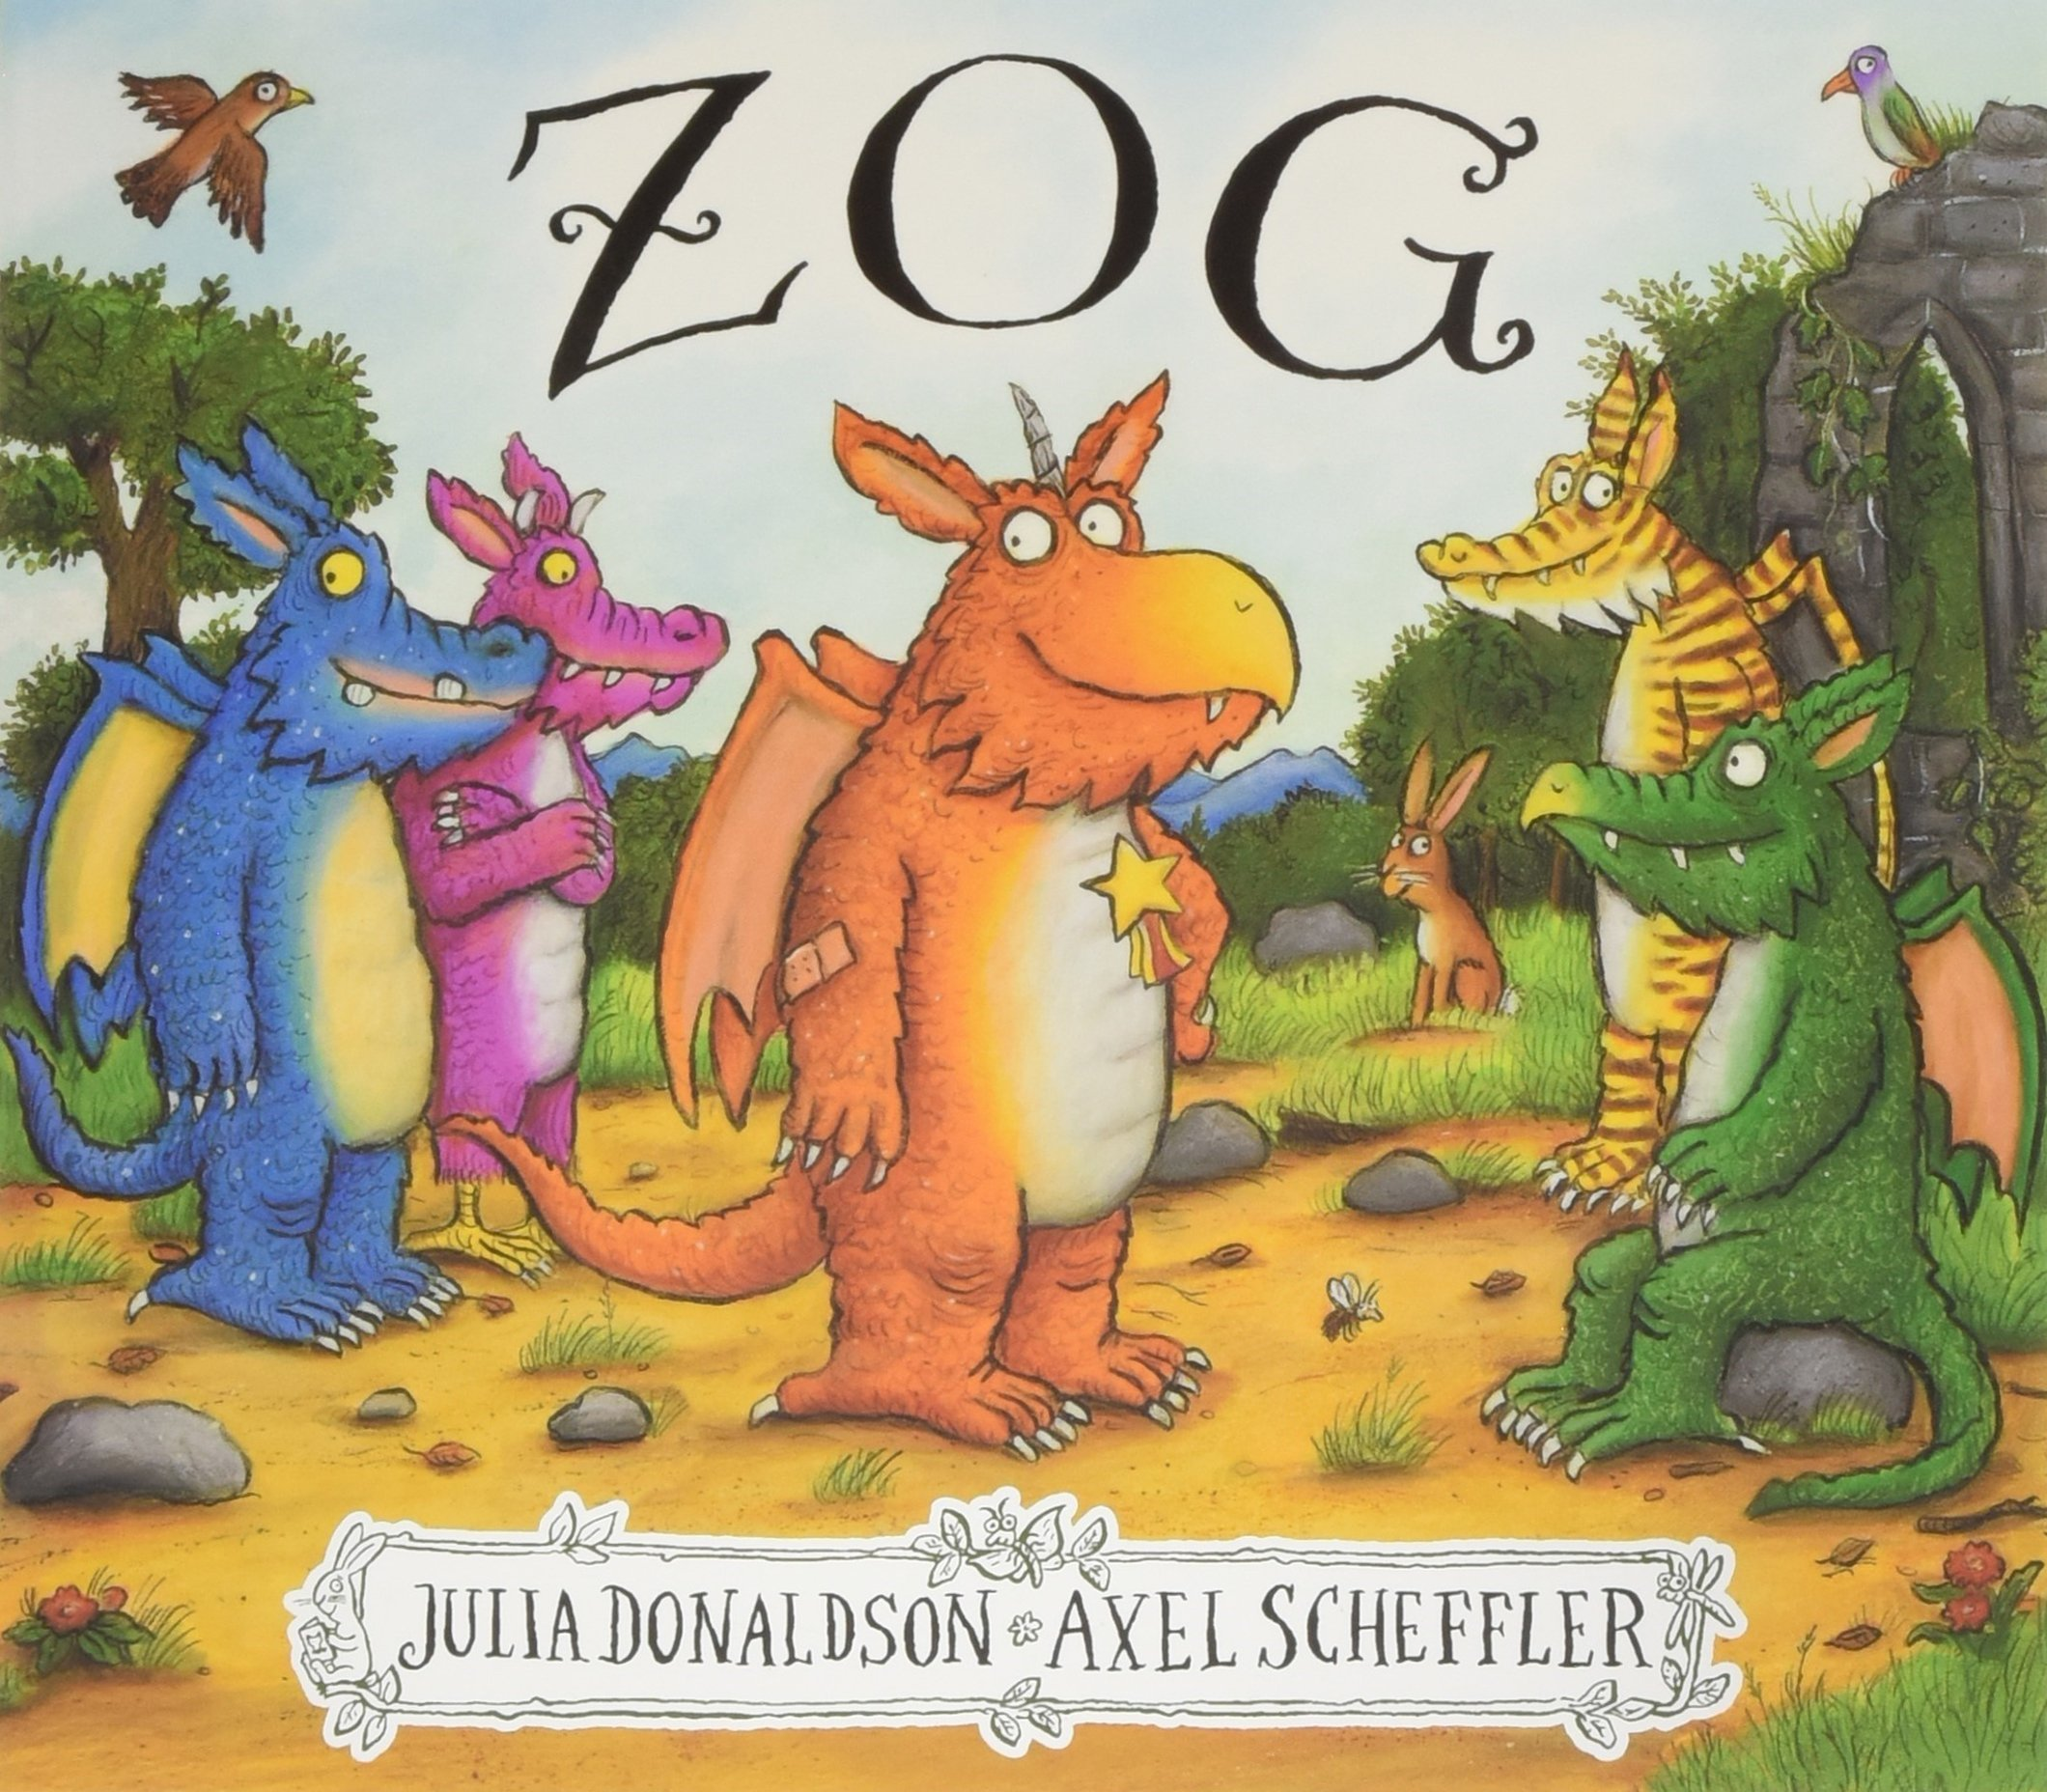 Zog: Amazon.co.uk: Donaldson, Julia, Scheffler, Axel: Books